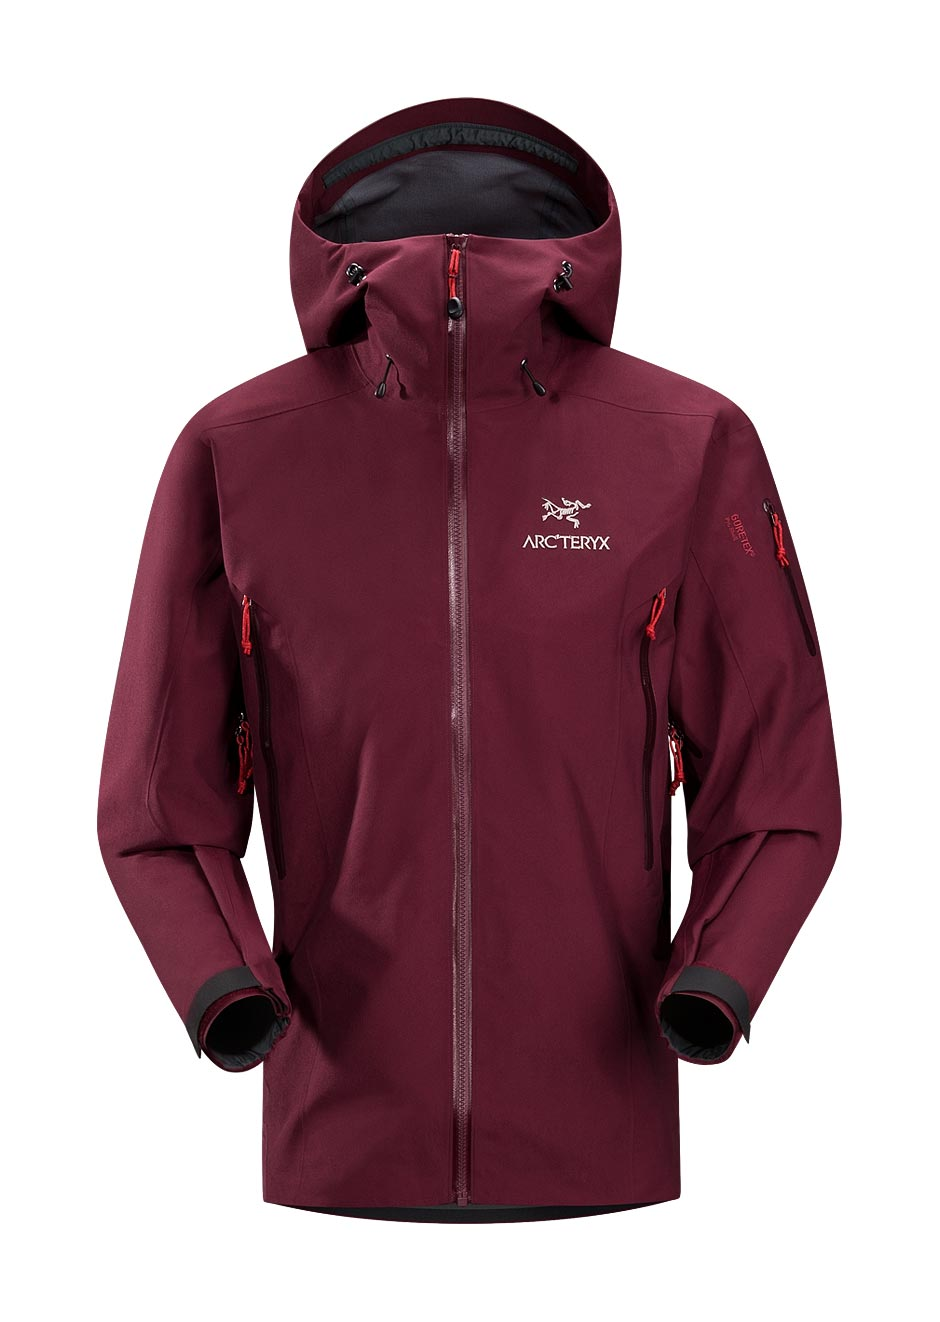 Arcteryx Jackets Men Tibetan Red Theta SV Jacket